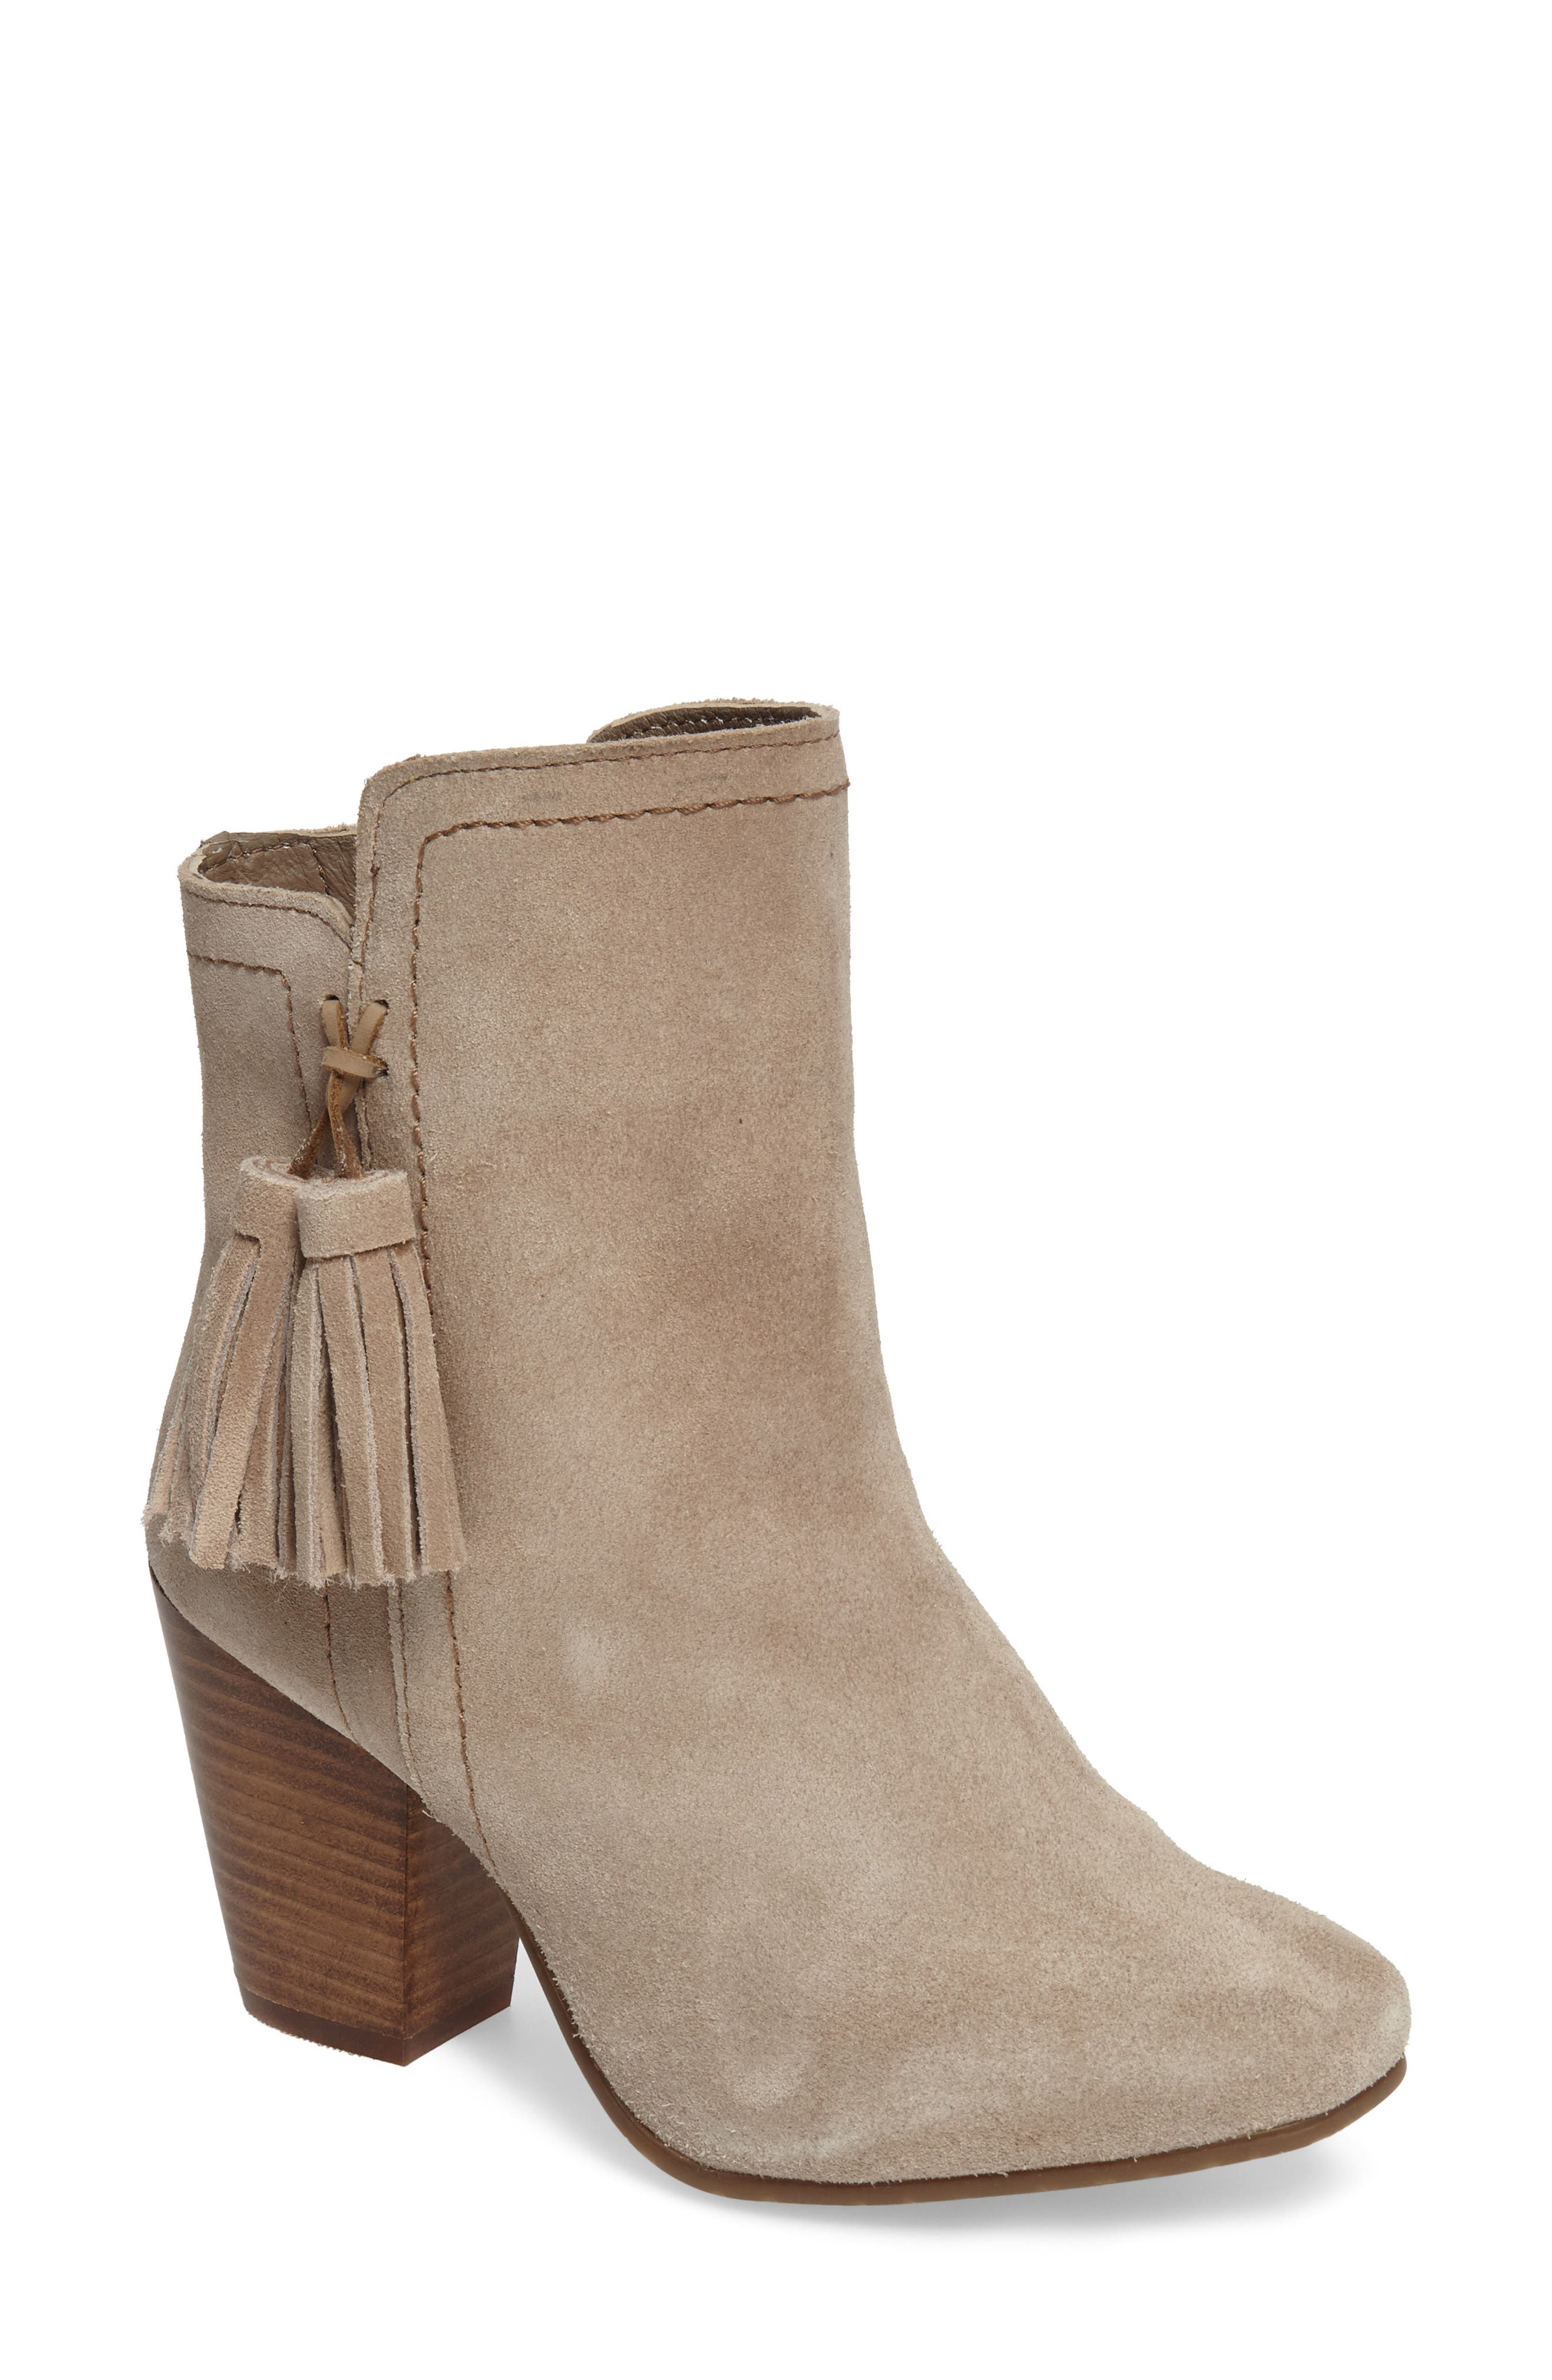 Daisee Billie Bootie,                             Main thumbnail 1, color,                             252